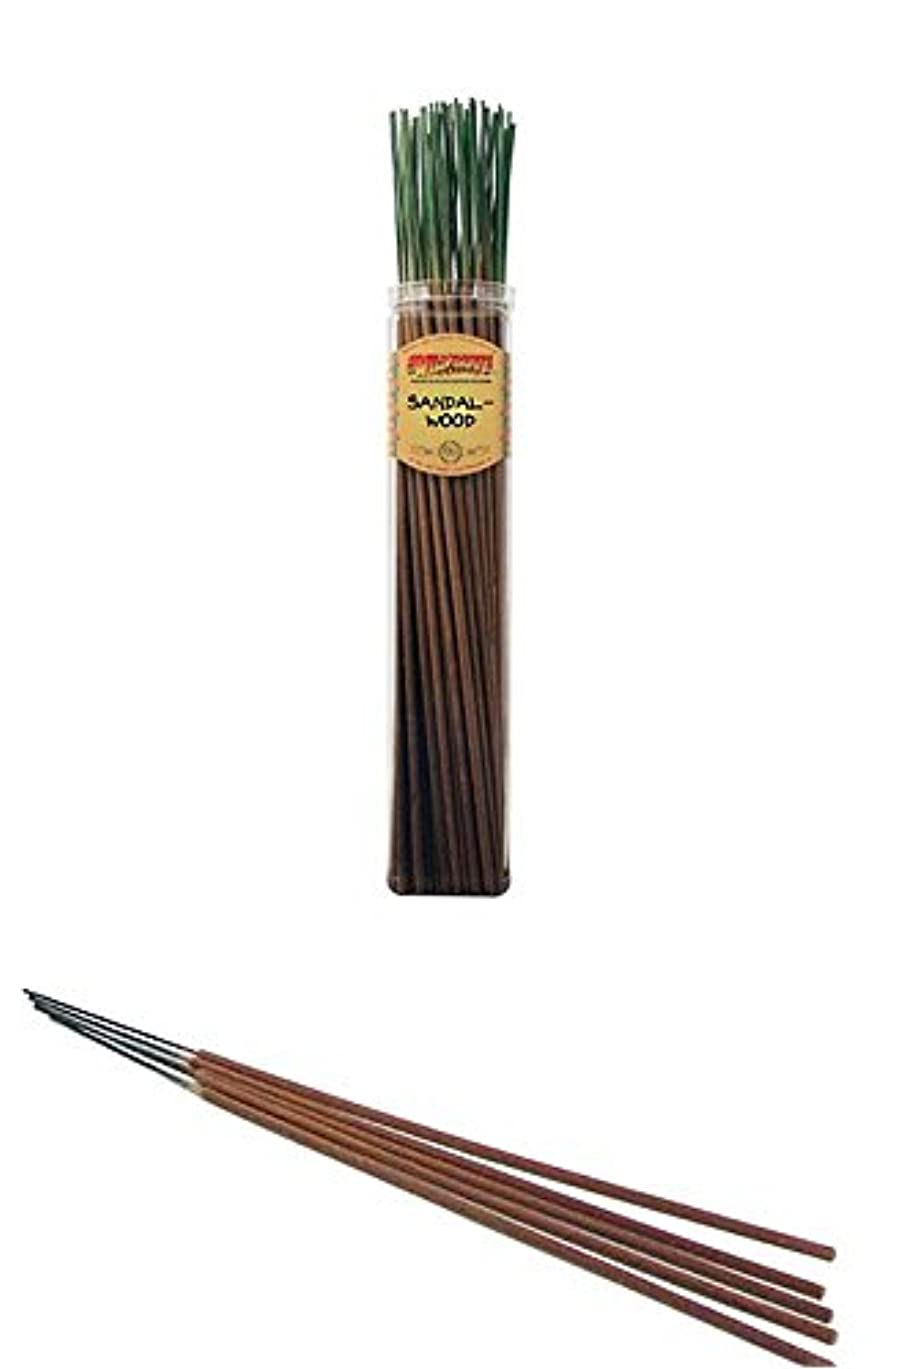 中央値ルーチン一緒サンダルウッド – Wild Berry Highly Fragranced Large Incense Sticks